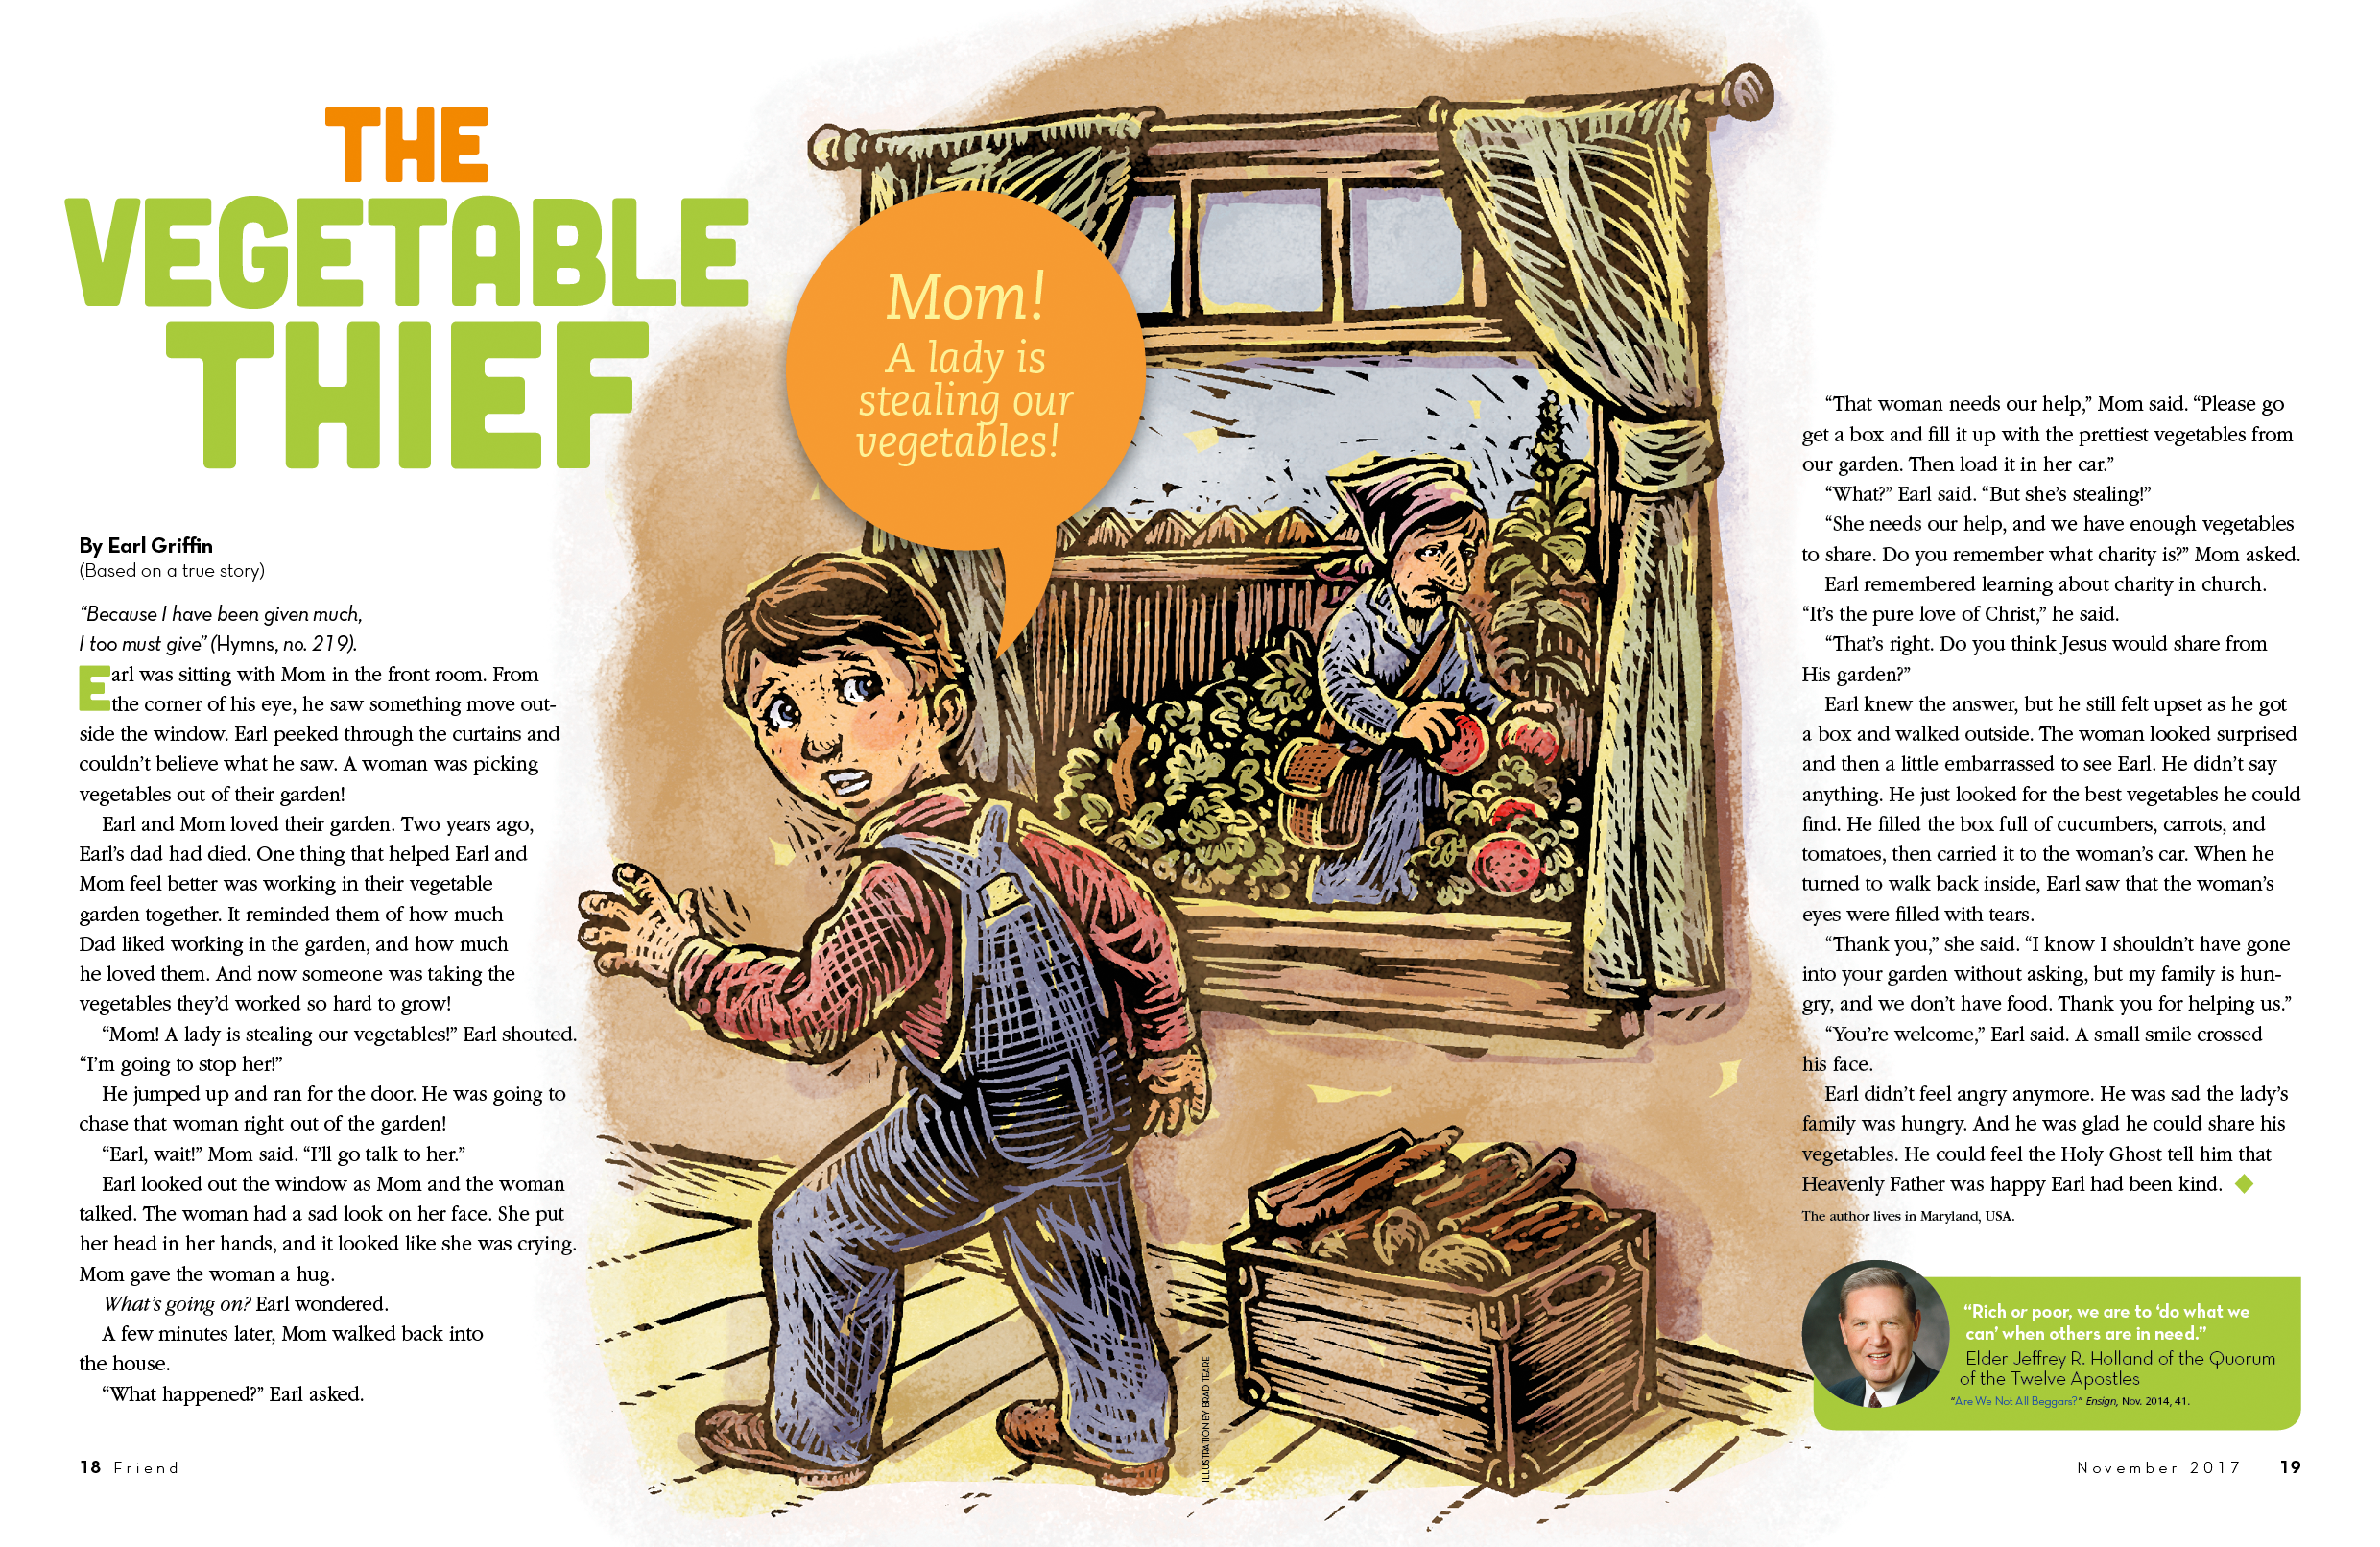 The Vegetable Thief